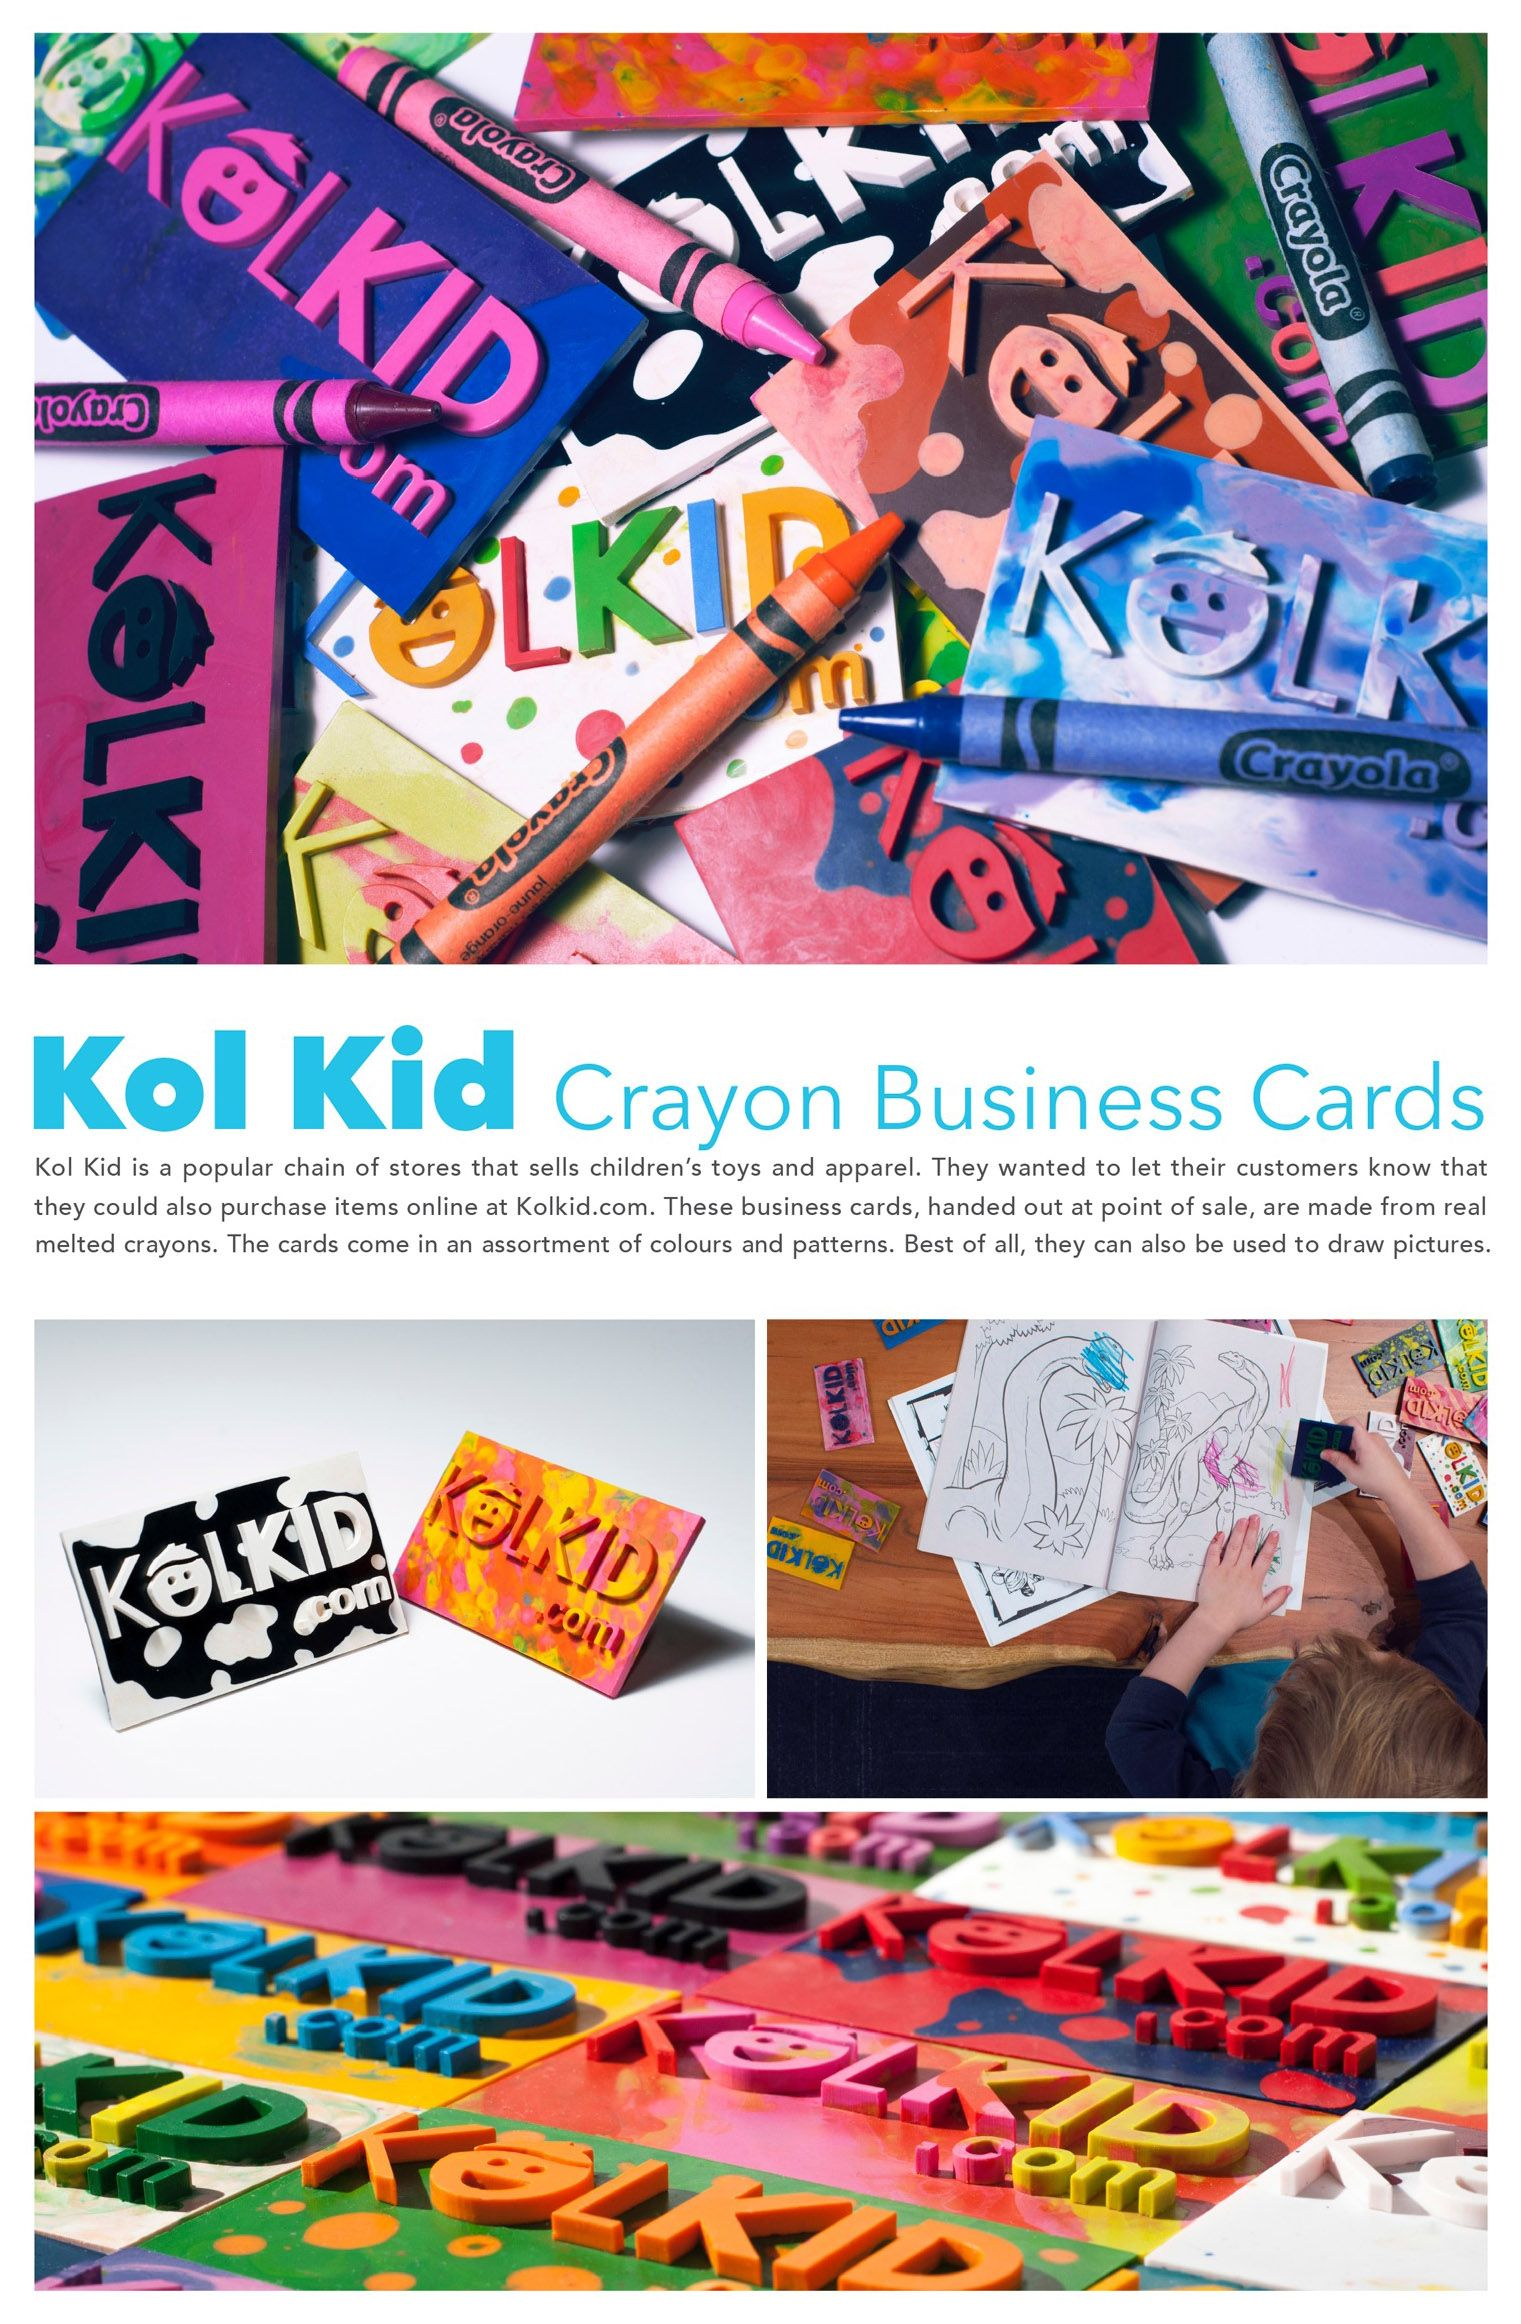 Ultimate creative business cards collection   Business cards and ...